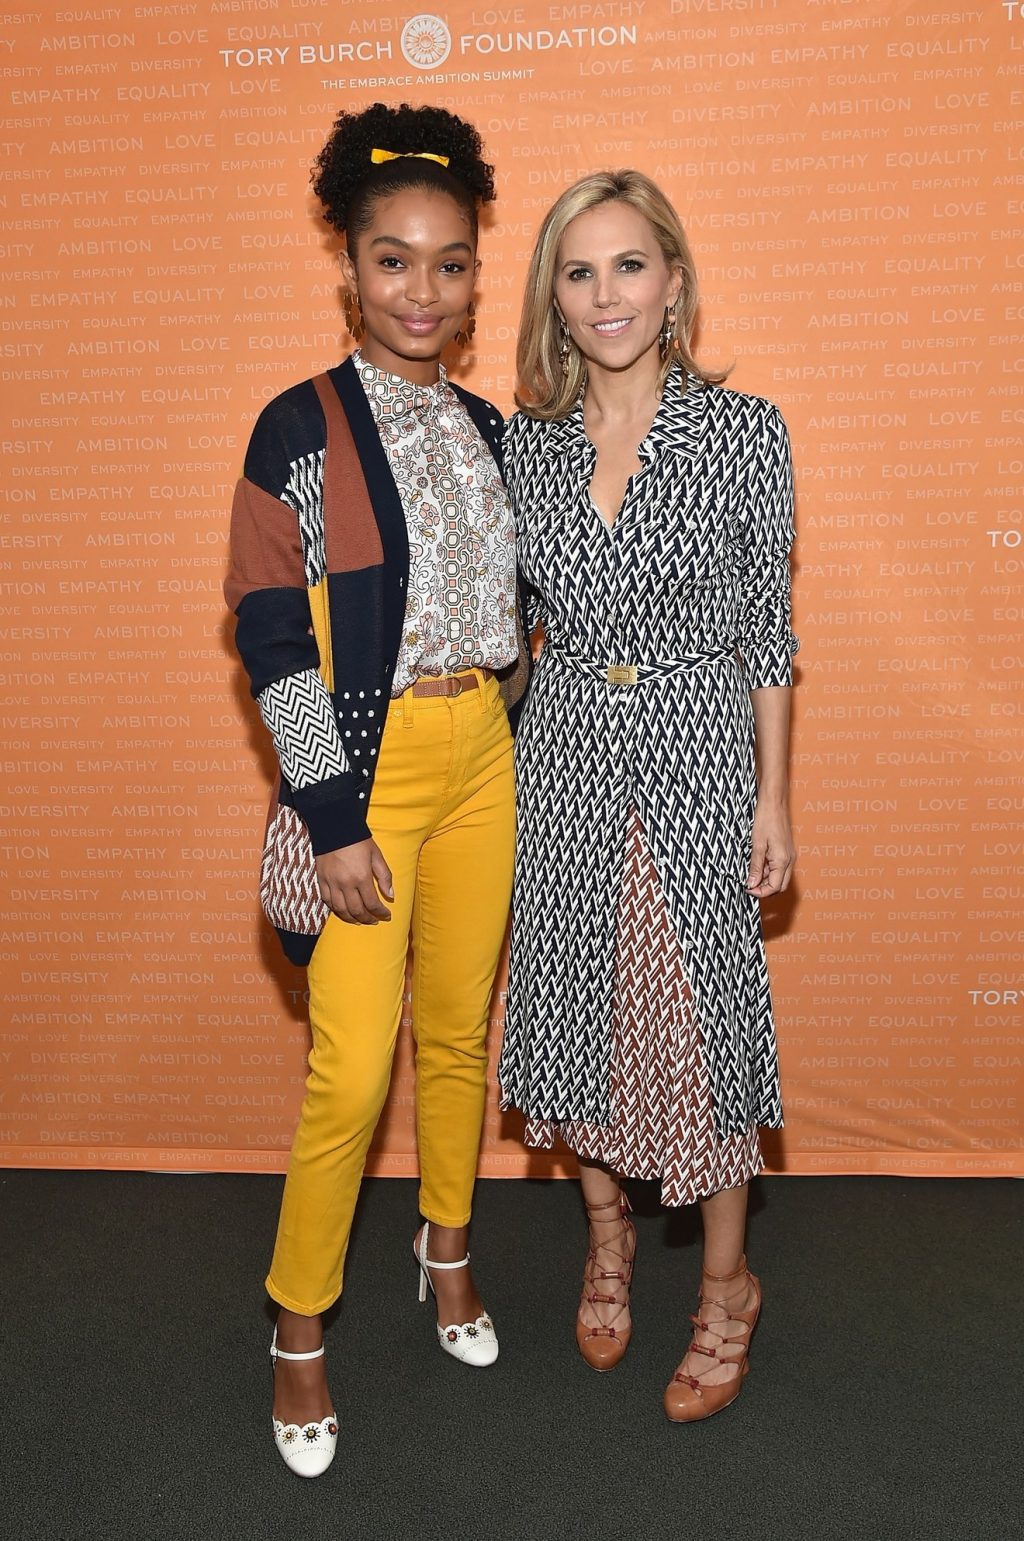 Tory Burch: A Woman as Humble as She Is Successful